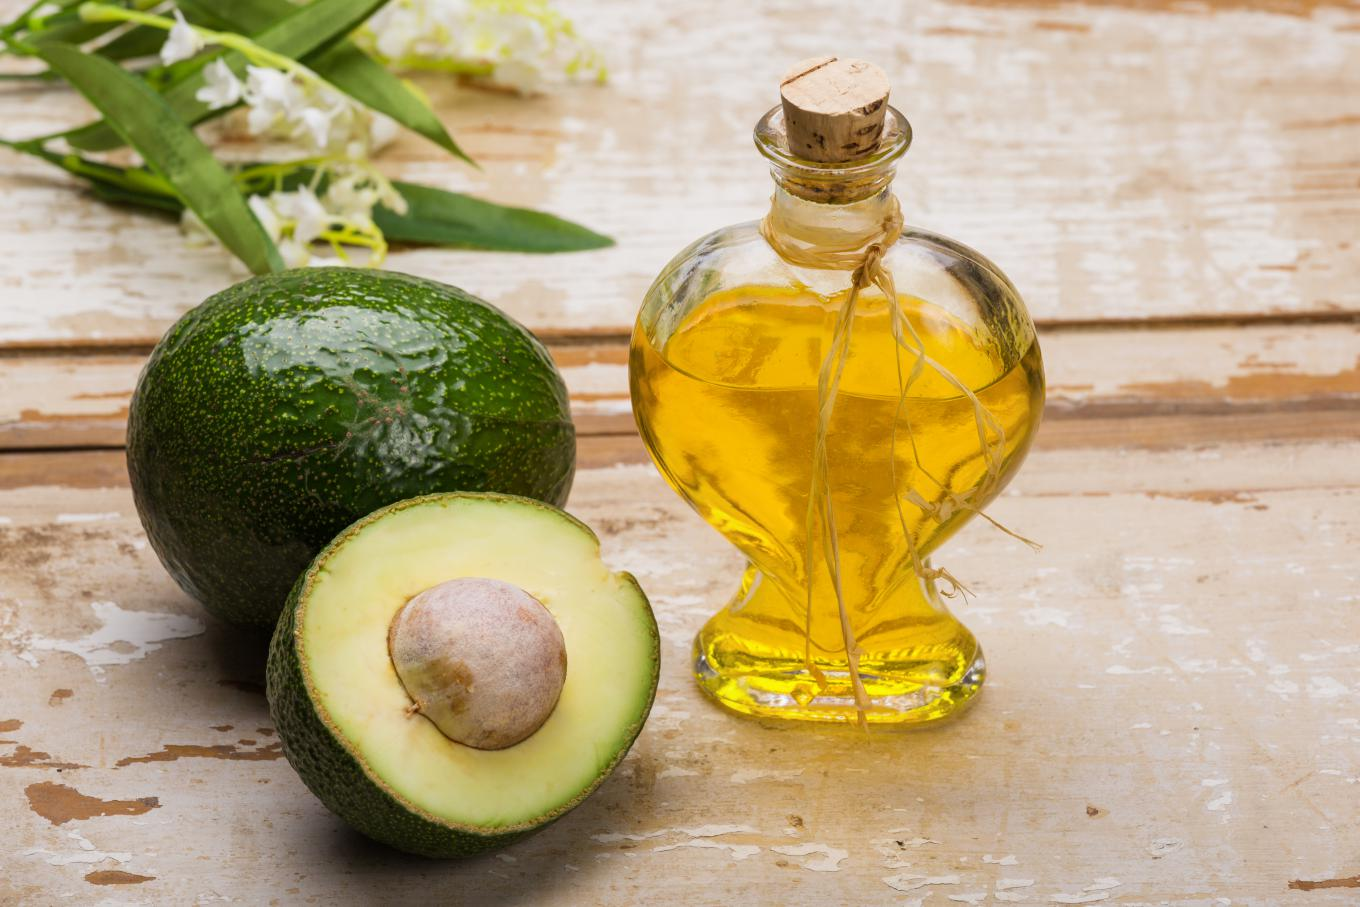 Plant-based oils for the diet - Are boutique oils really worth trying?